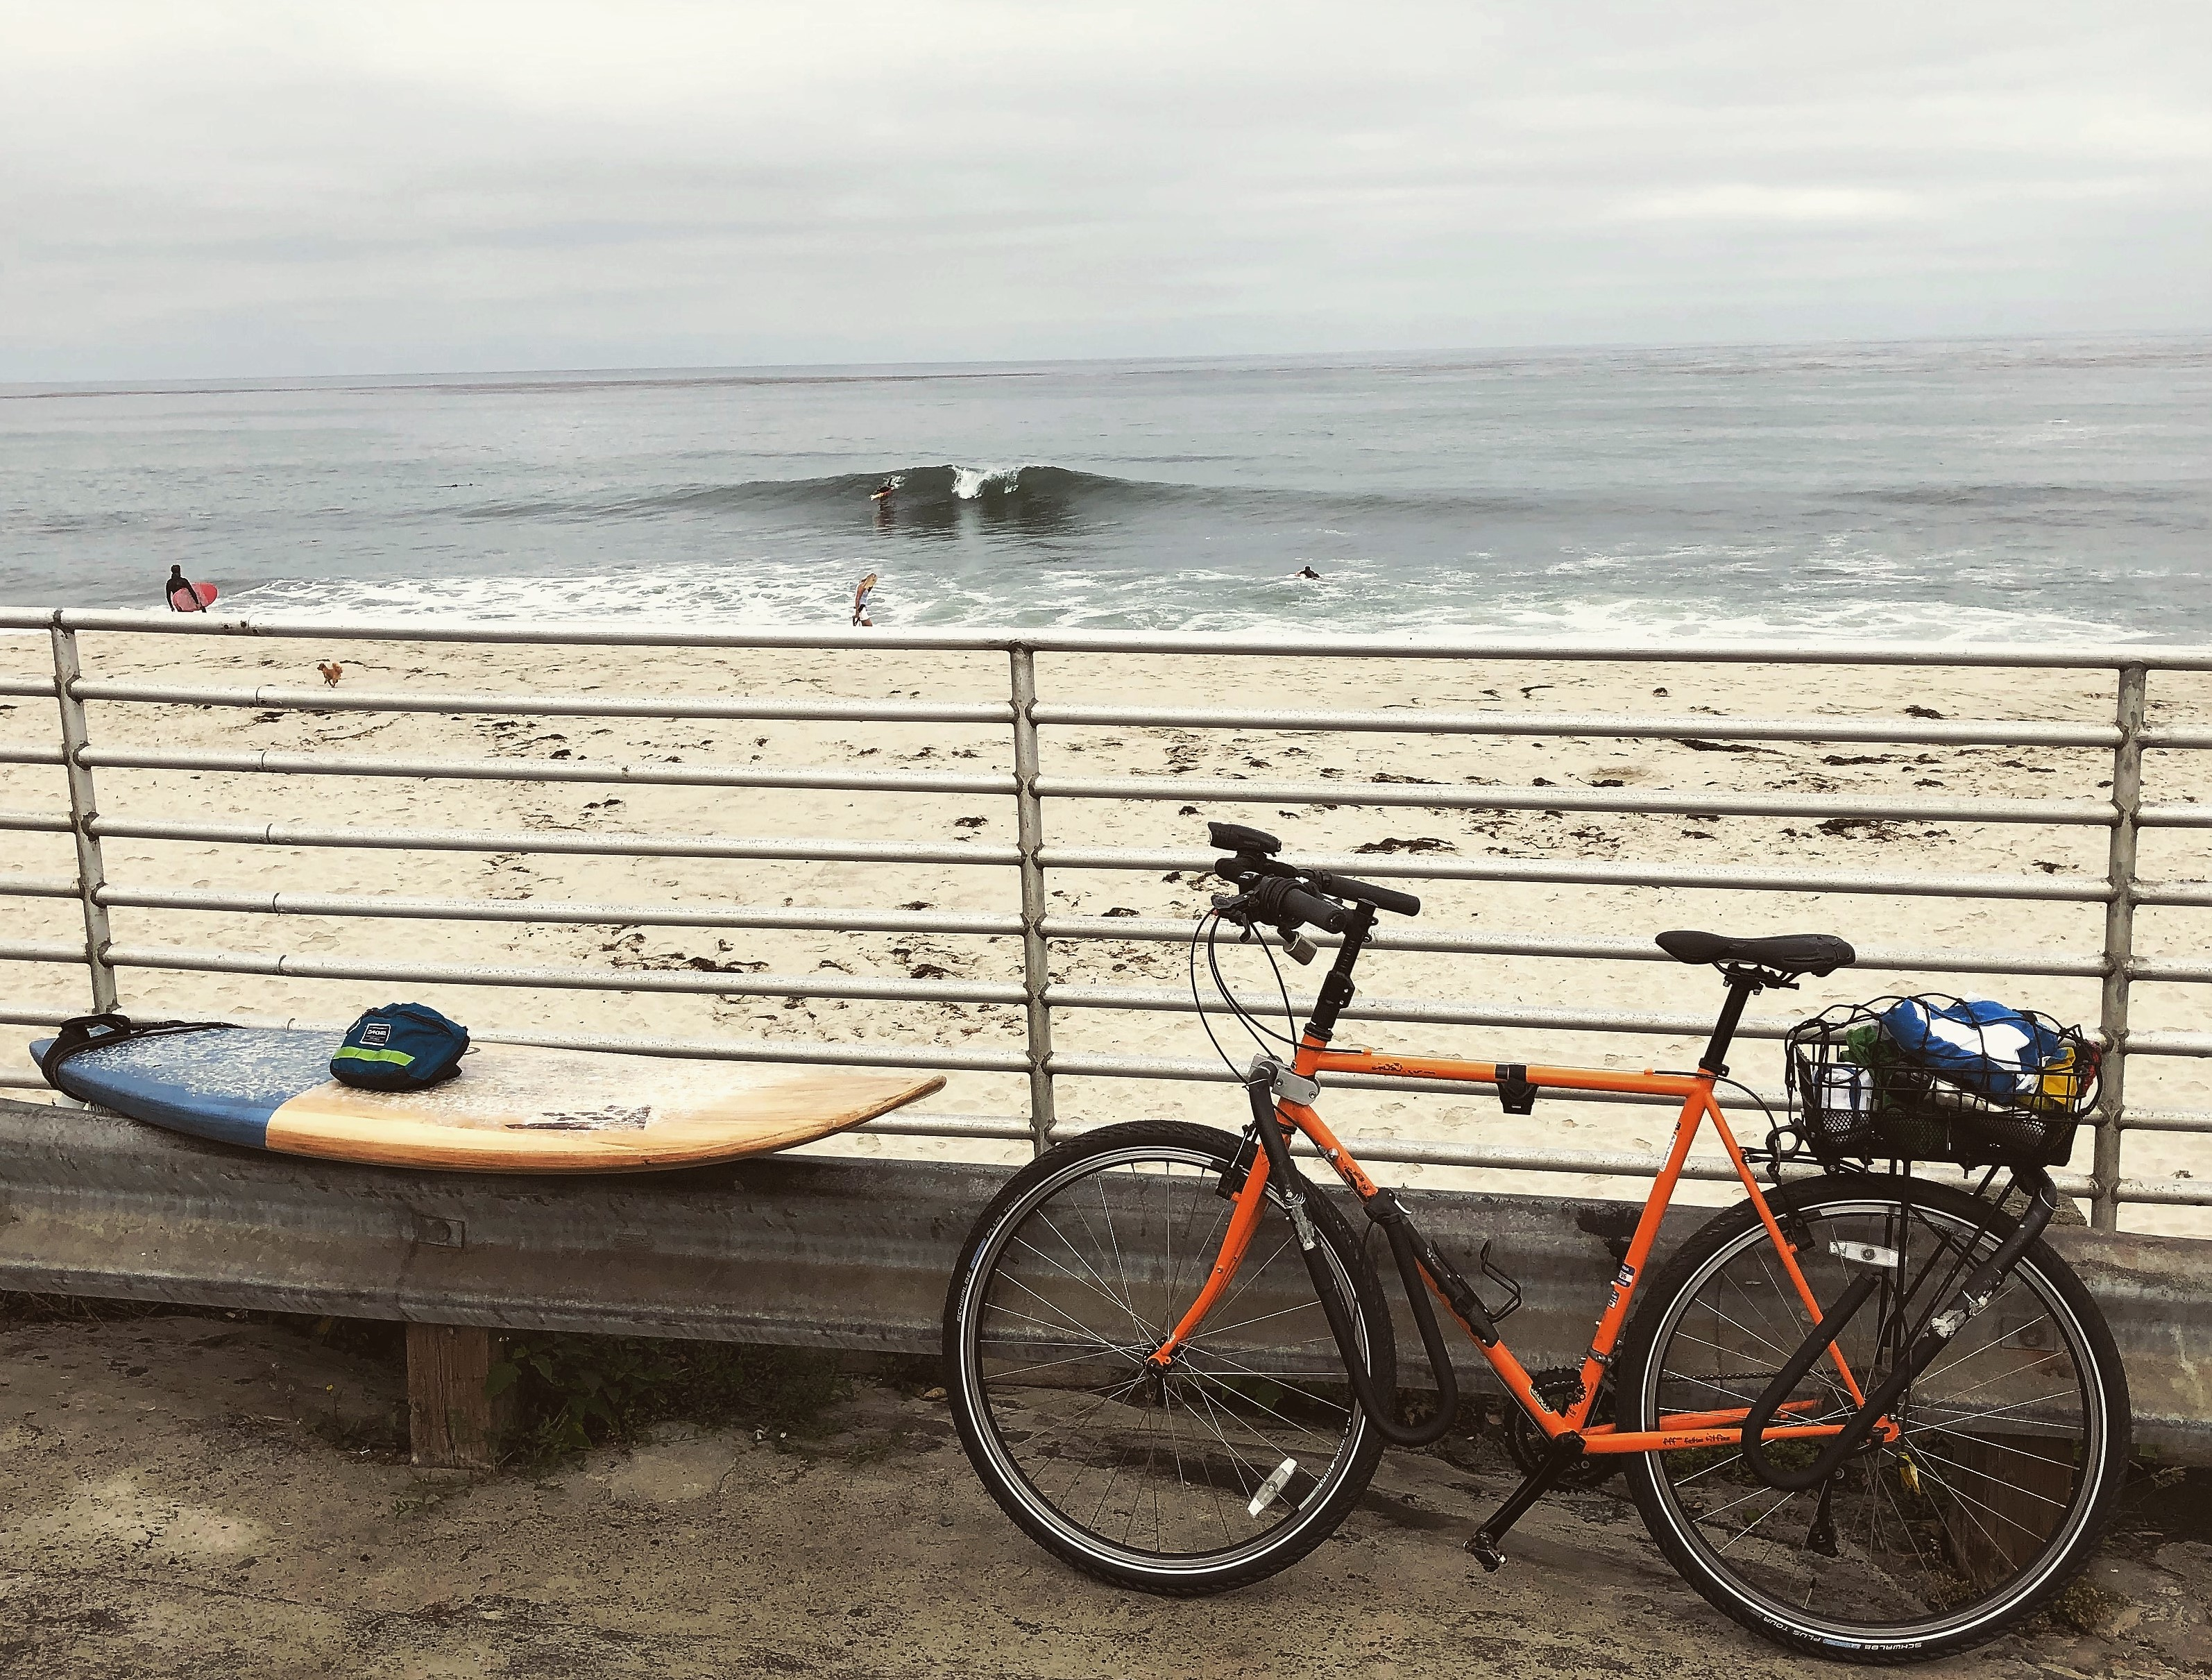 All geared up to bike and surf at Windansea